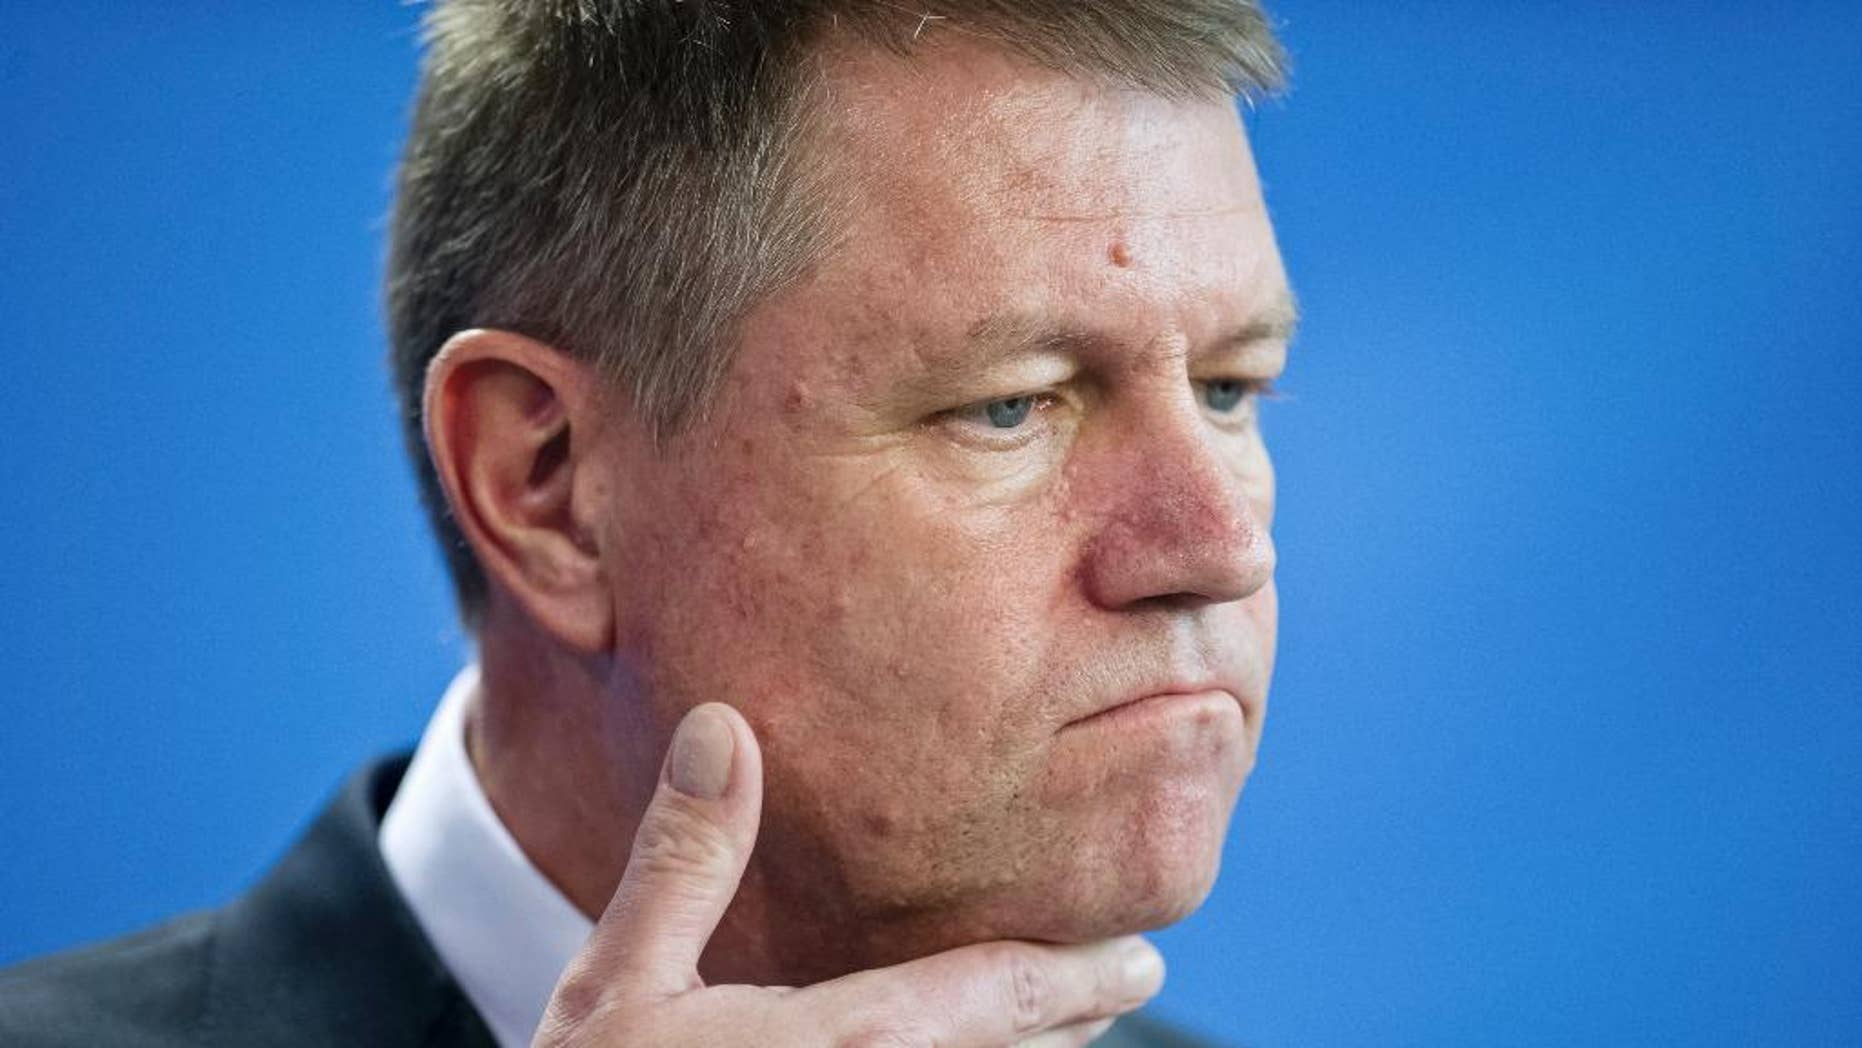 FILE - In this Thursday, Feb. 26, 2015 file picture Romanian President Klaus Iohannis attends a news conference after a meeting with German Chancellor Angela Merkel at the chancellery in Berlin, Germany. Romania's president has lost a bid to overturn a court case on a property he lost ownership of, following an 18-year court case. after a court in the southern city of Pitesti on Wednesday, Feb. 22, 2017 rejected his appeal for annulment on a lawsuit connected to a property he and his wife bought in 1999 in the central city of Sibiu. (AP Photo/Steffi Loos, File)